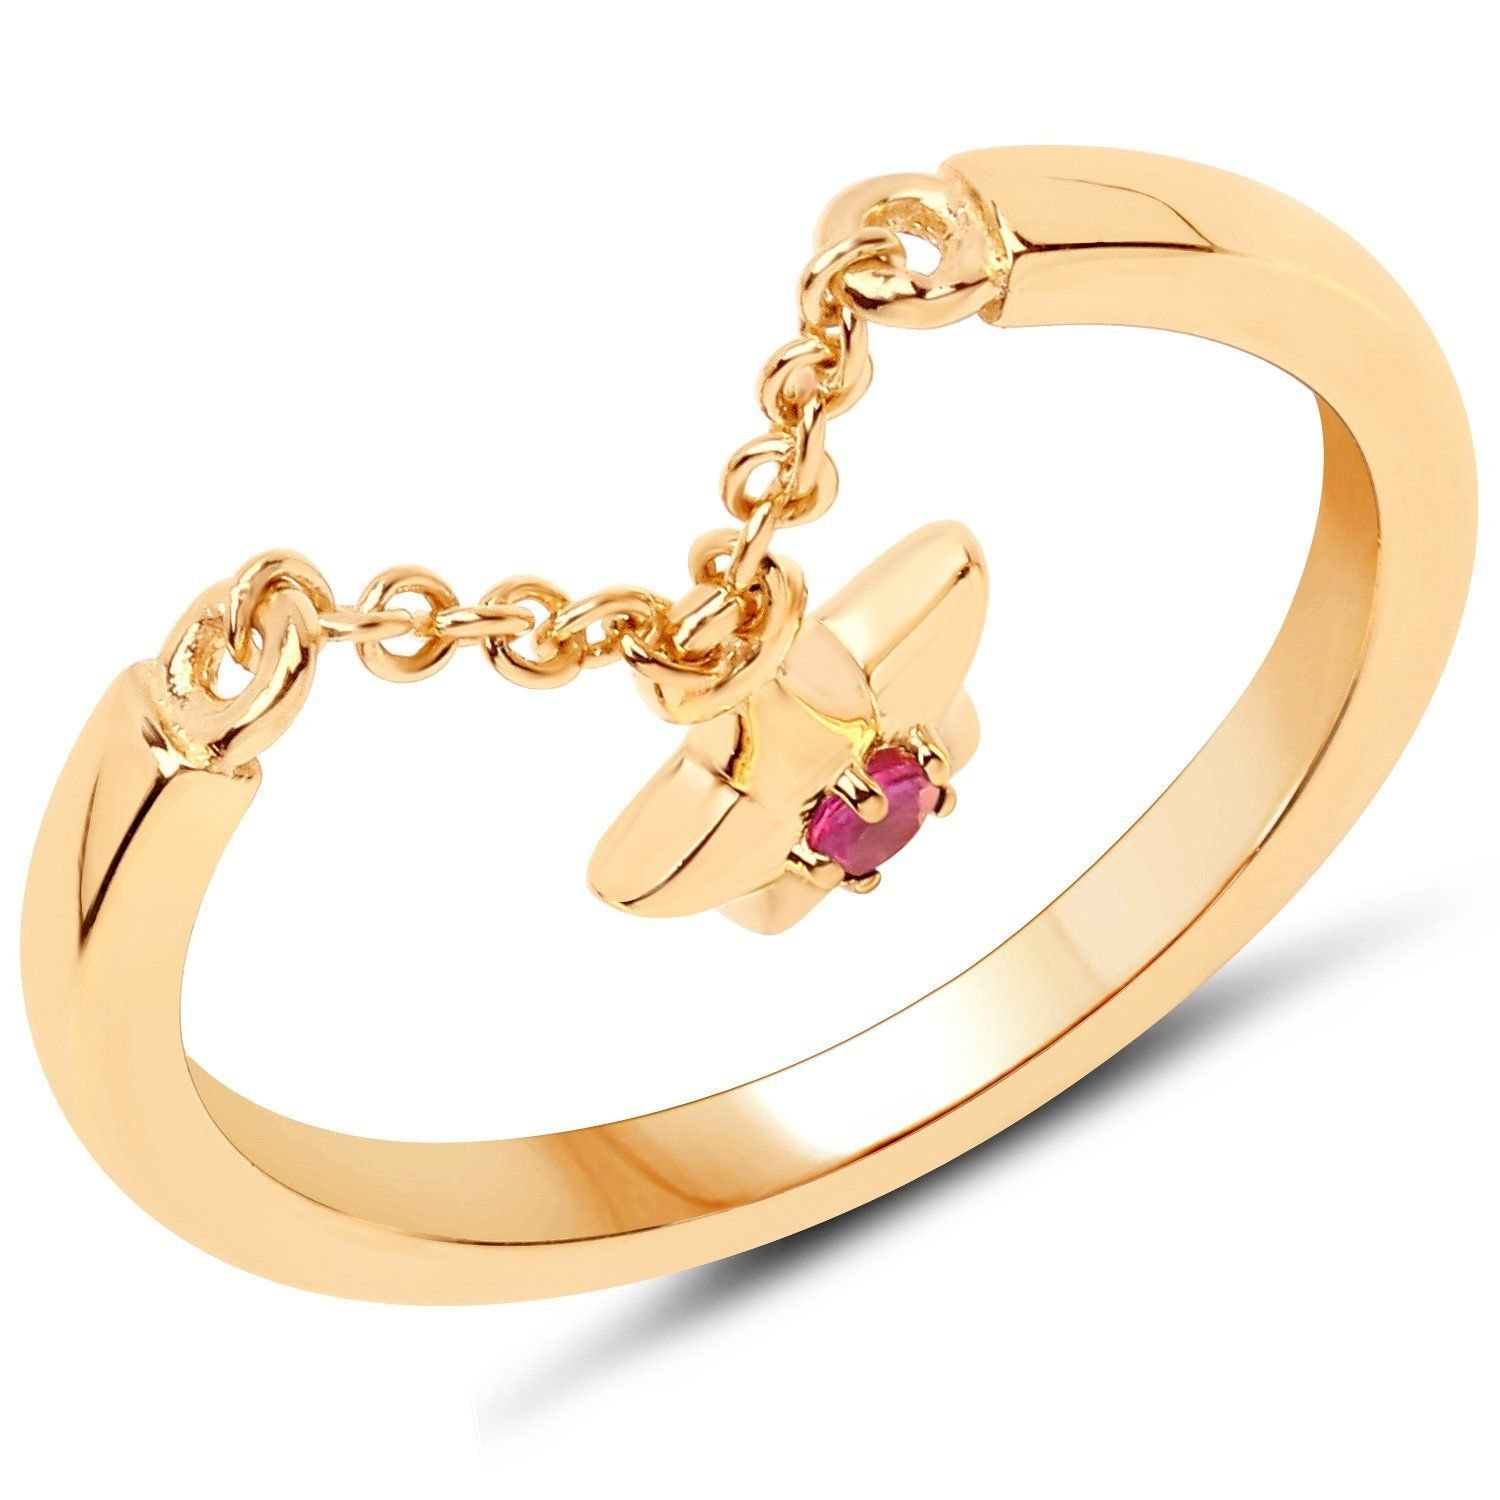 LoveHuang 0.05 Carats Genuine Ruby Star Droplet Ring Solid